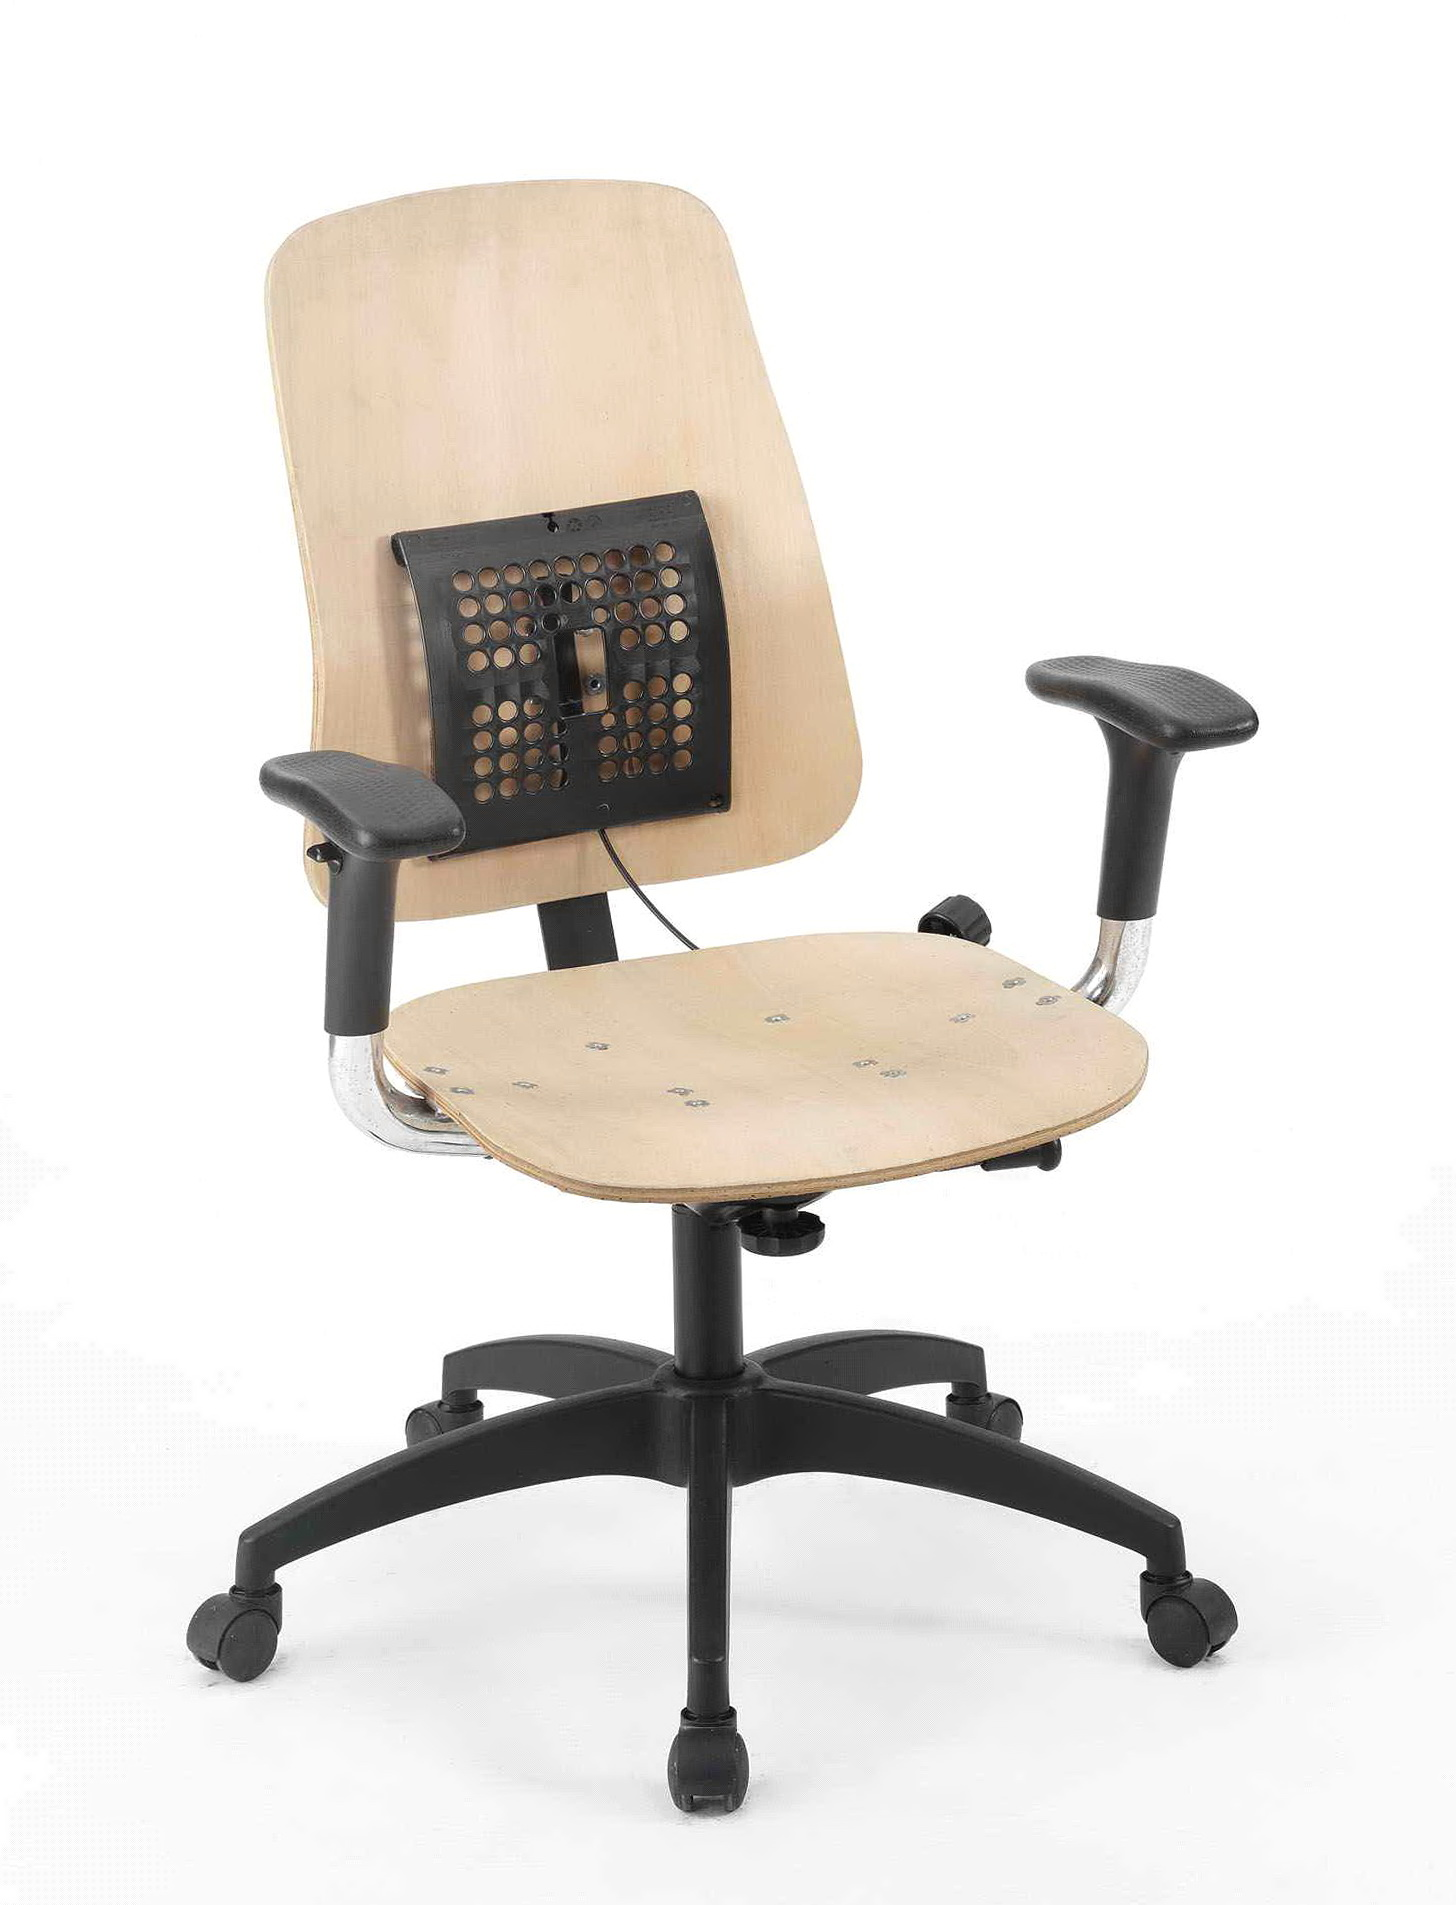 Lumbar Cushion For Chair